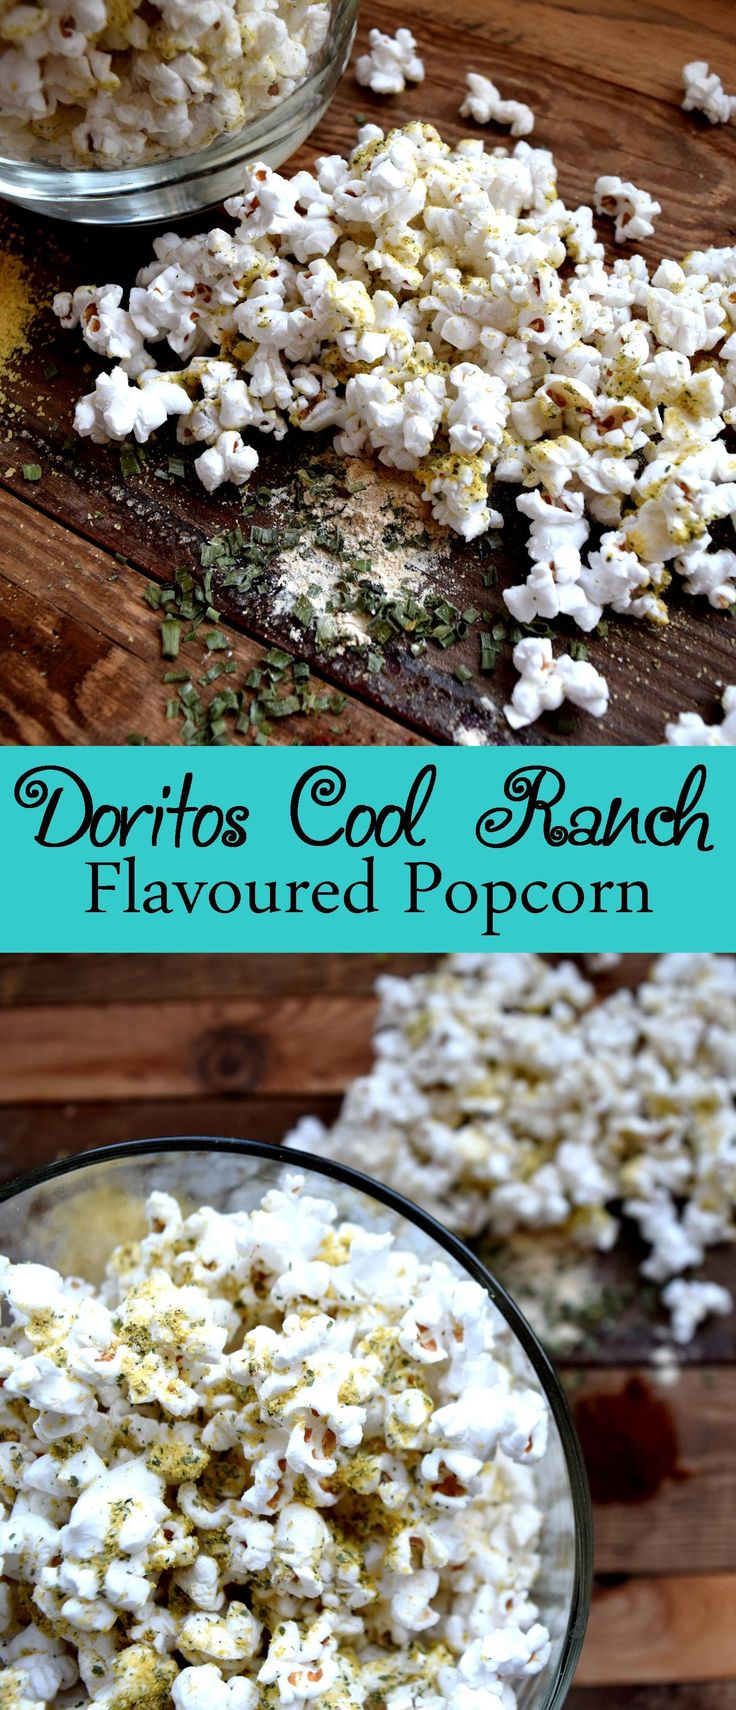 Doritos Cool Ranch Flavoured Popcorn                                                                                                                                                                                 More